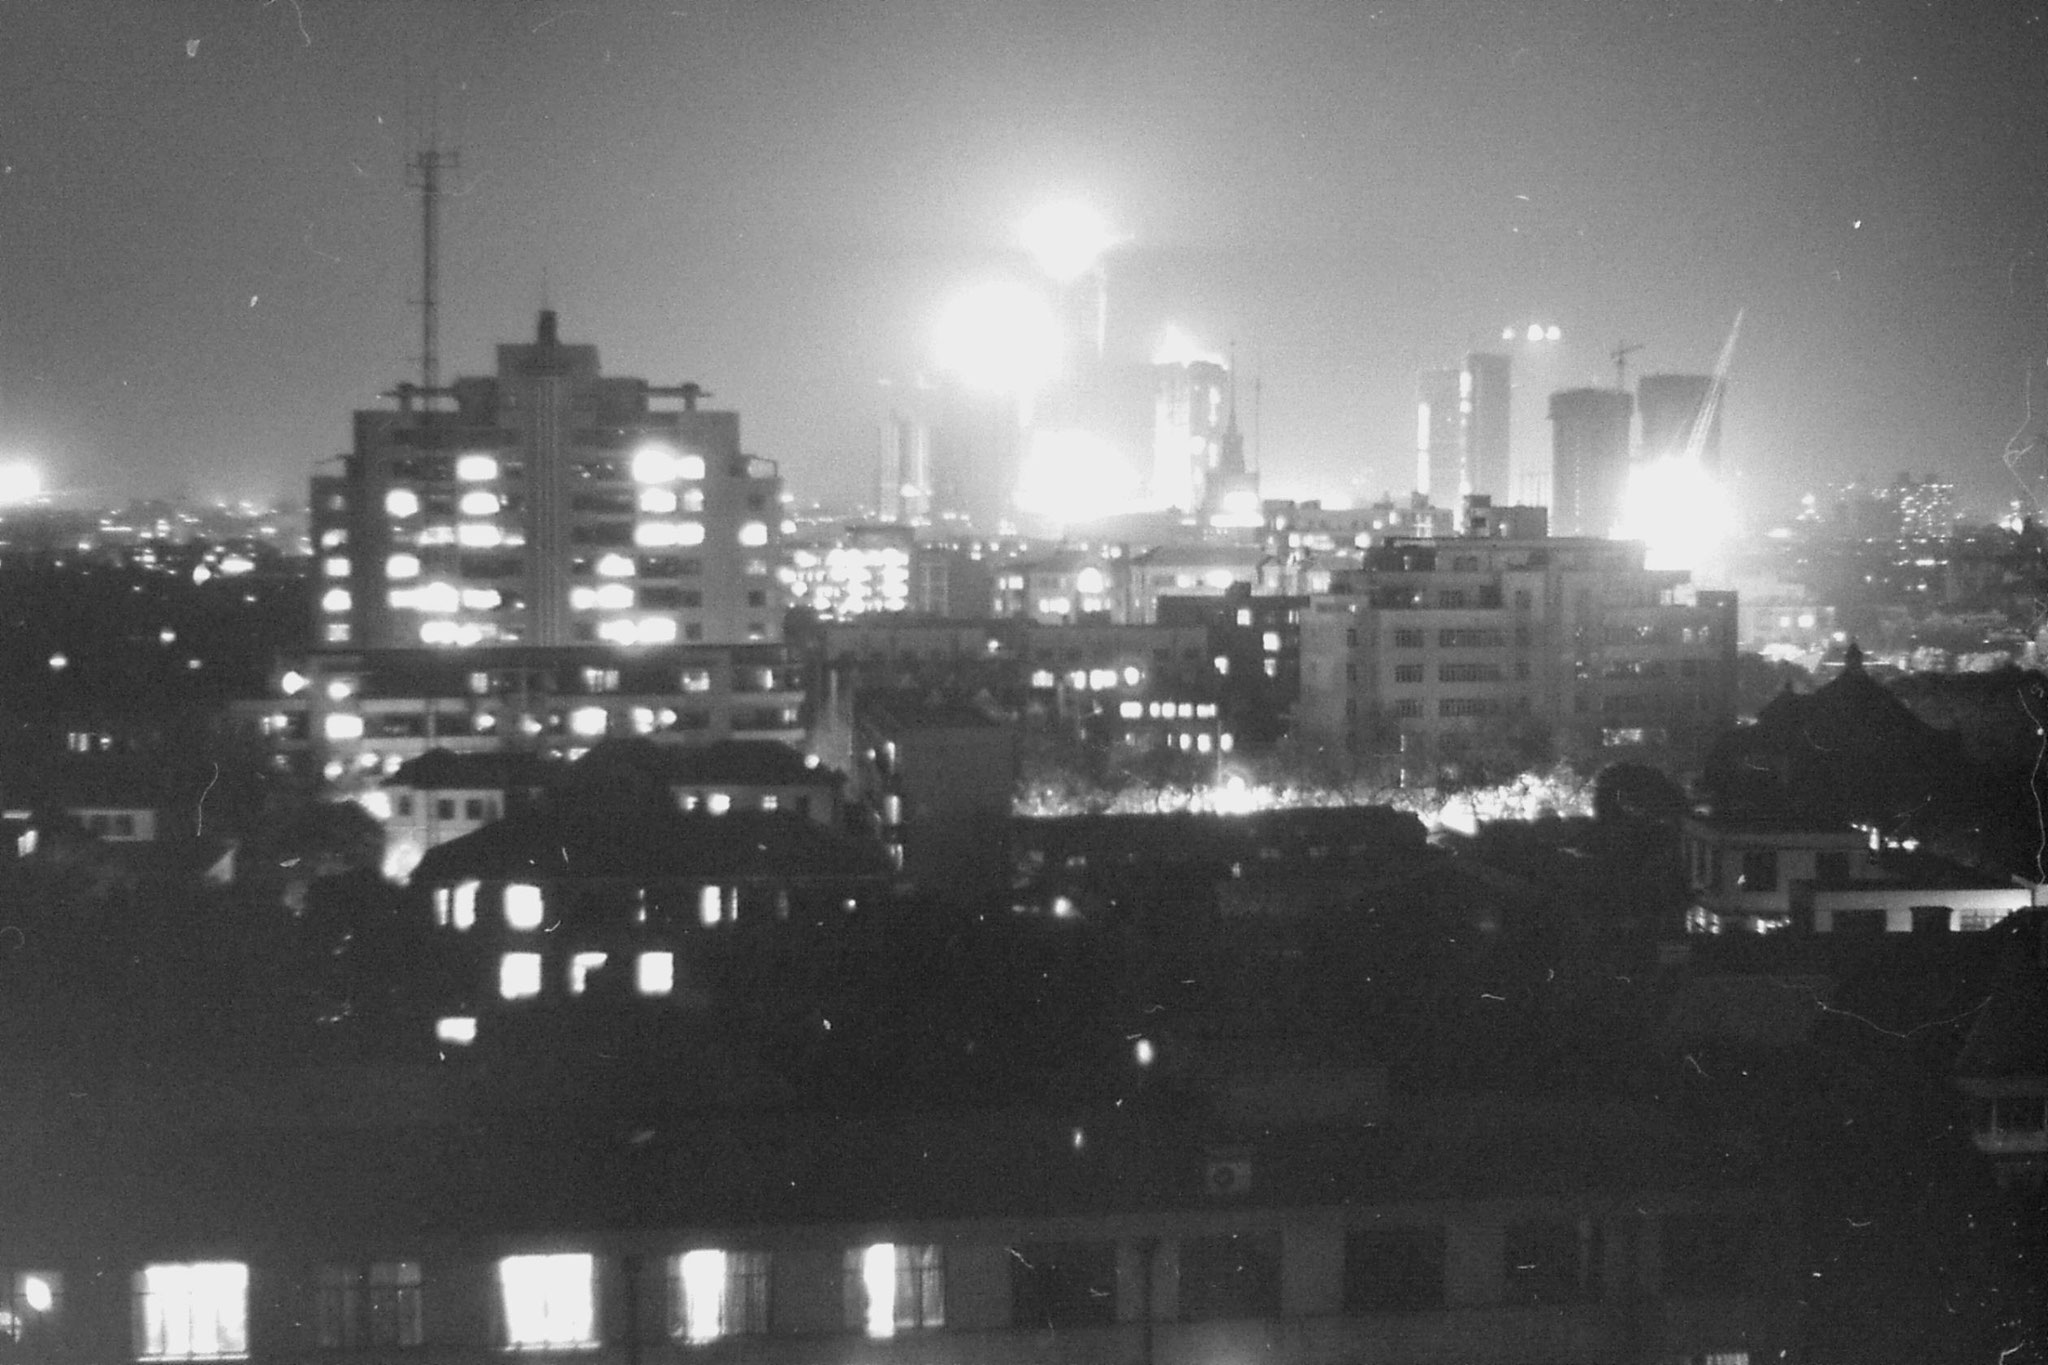 15/12/1988: 26: night view of Shanghai